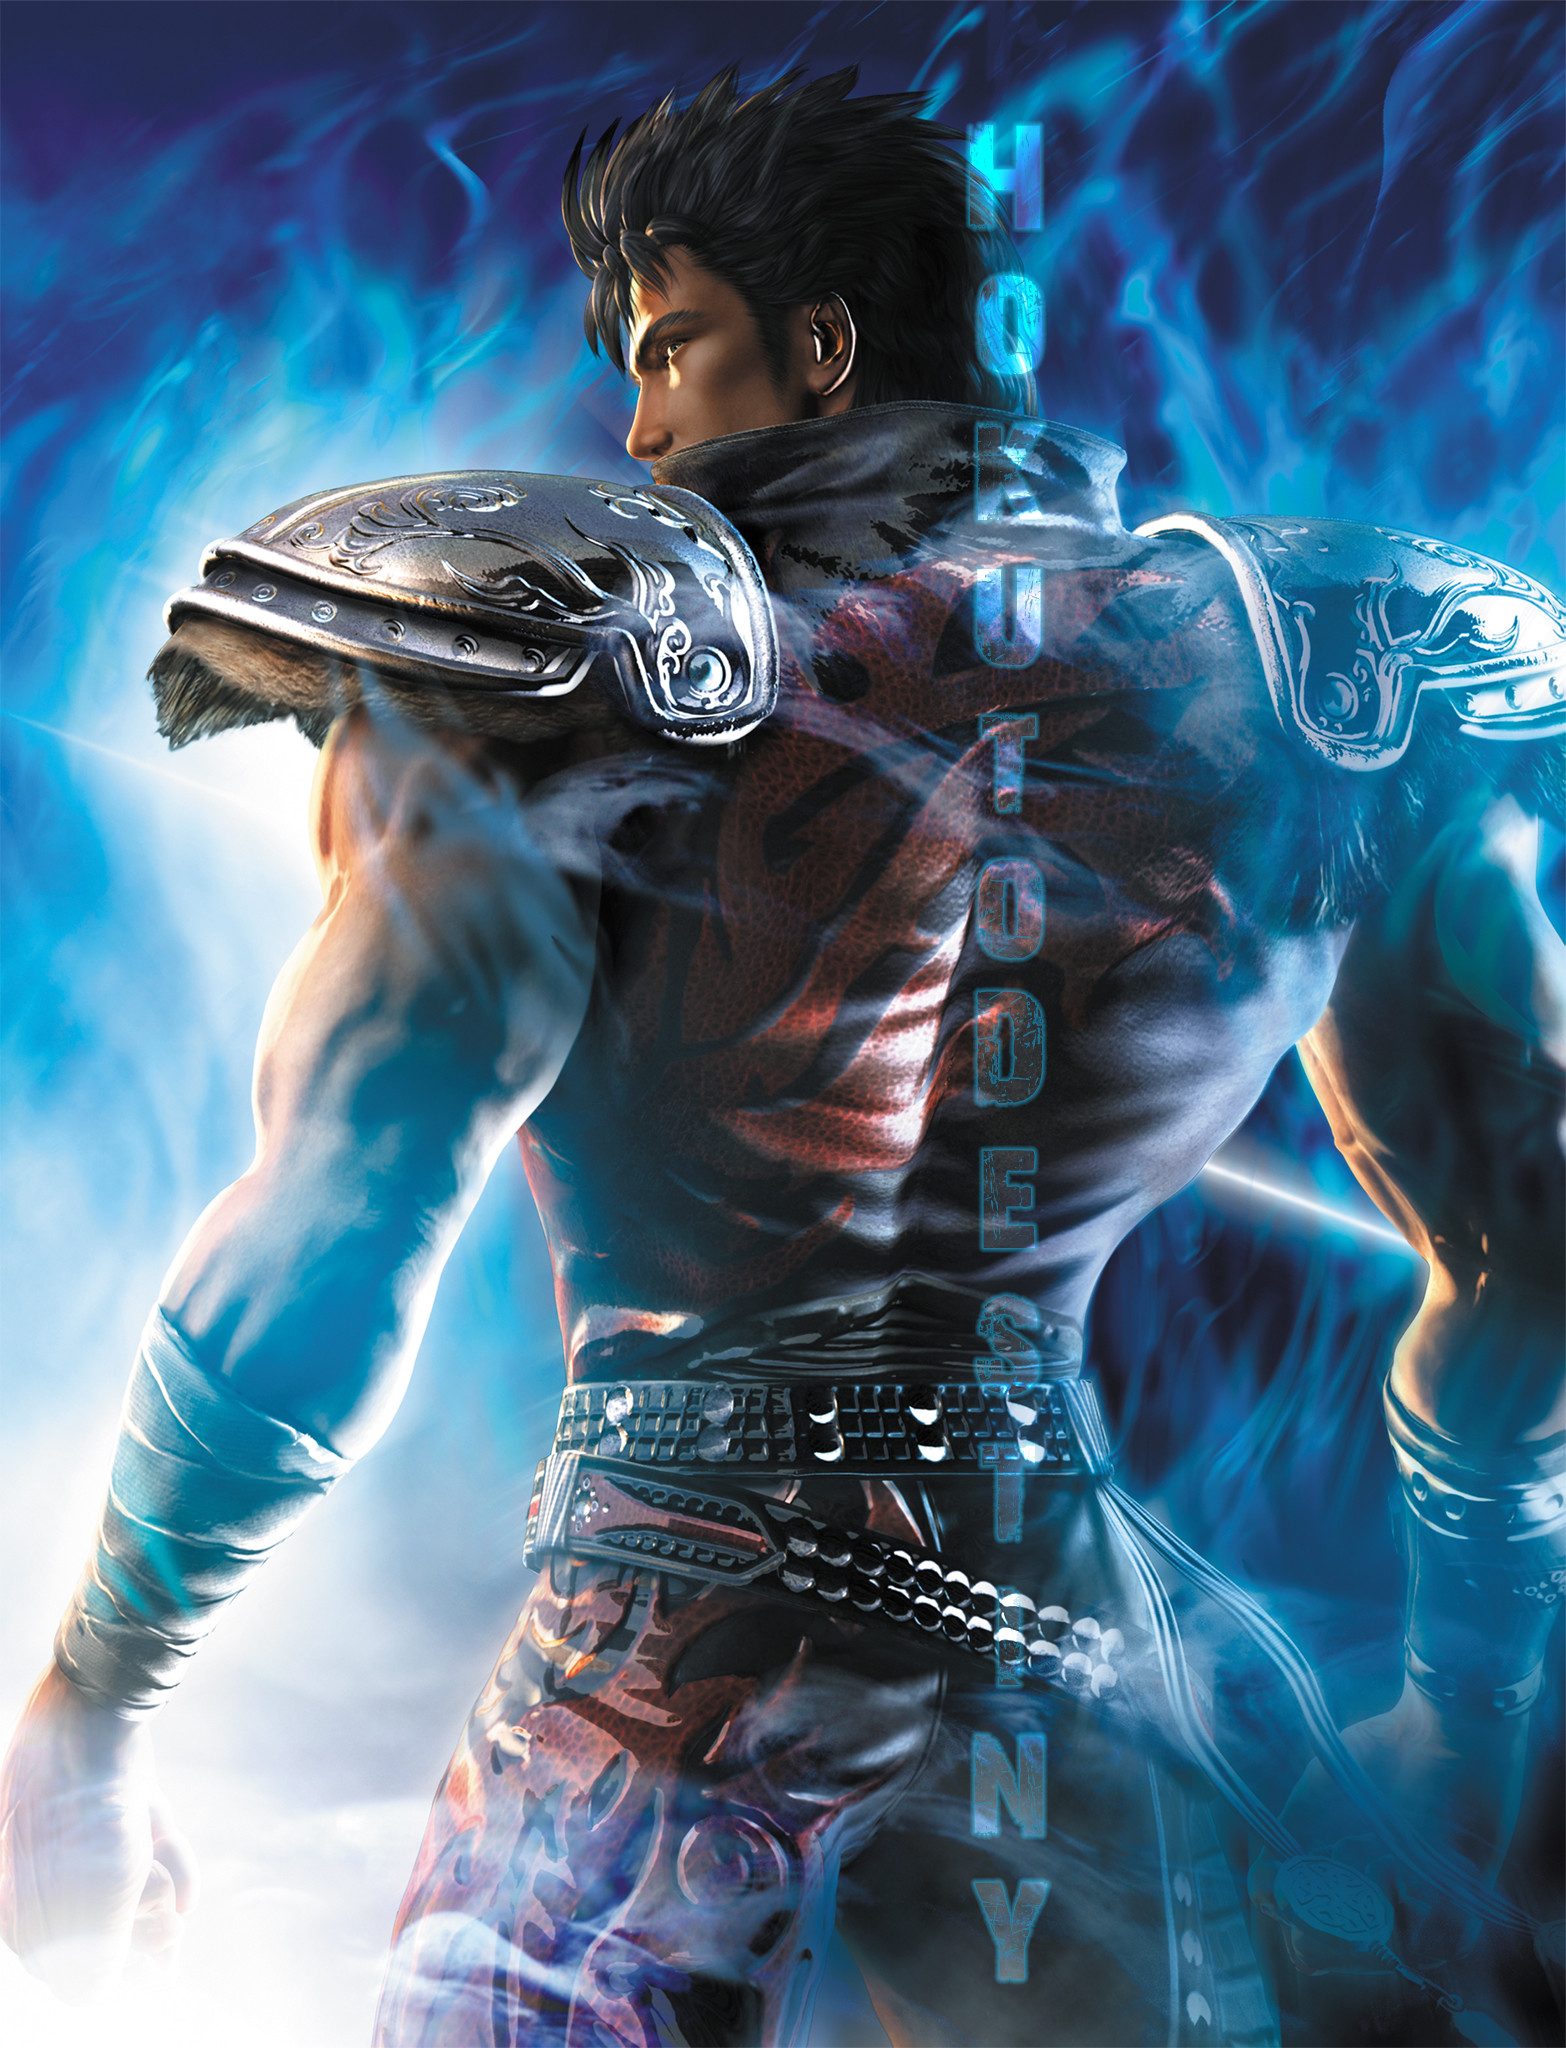 Kenshiro Fist Of The North Star Wallpaper 2448x2244 247266